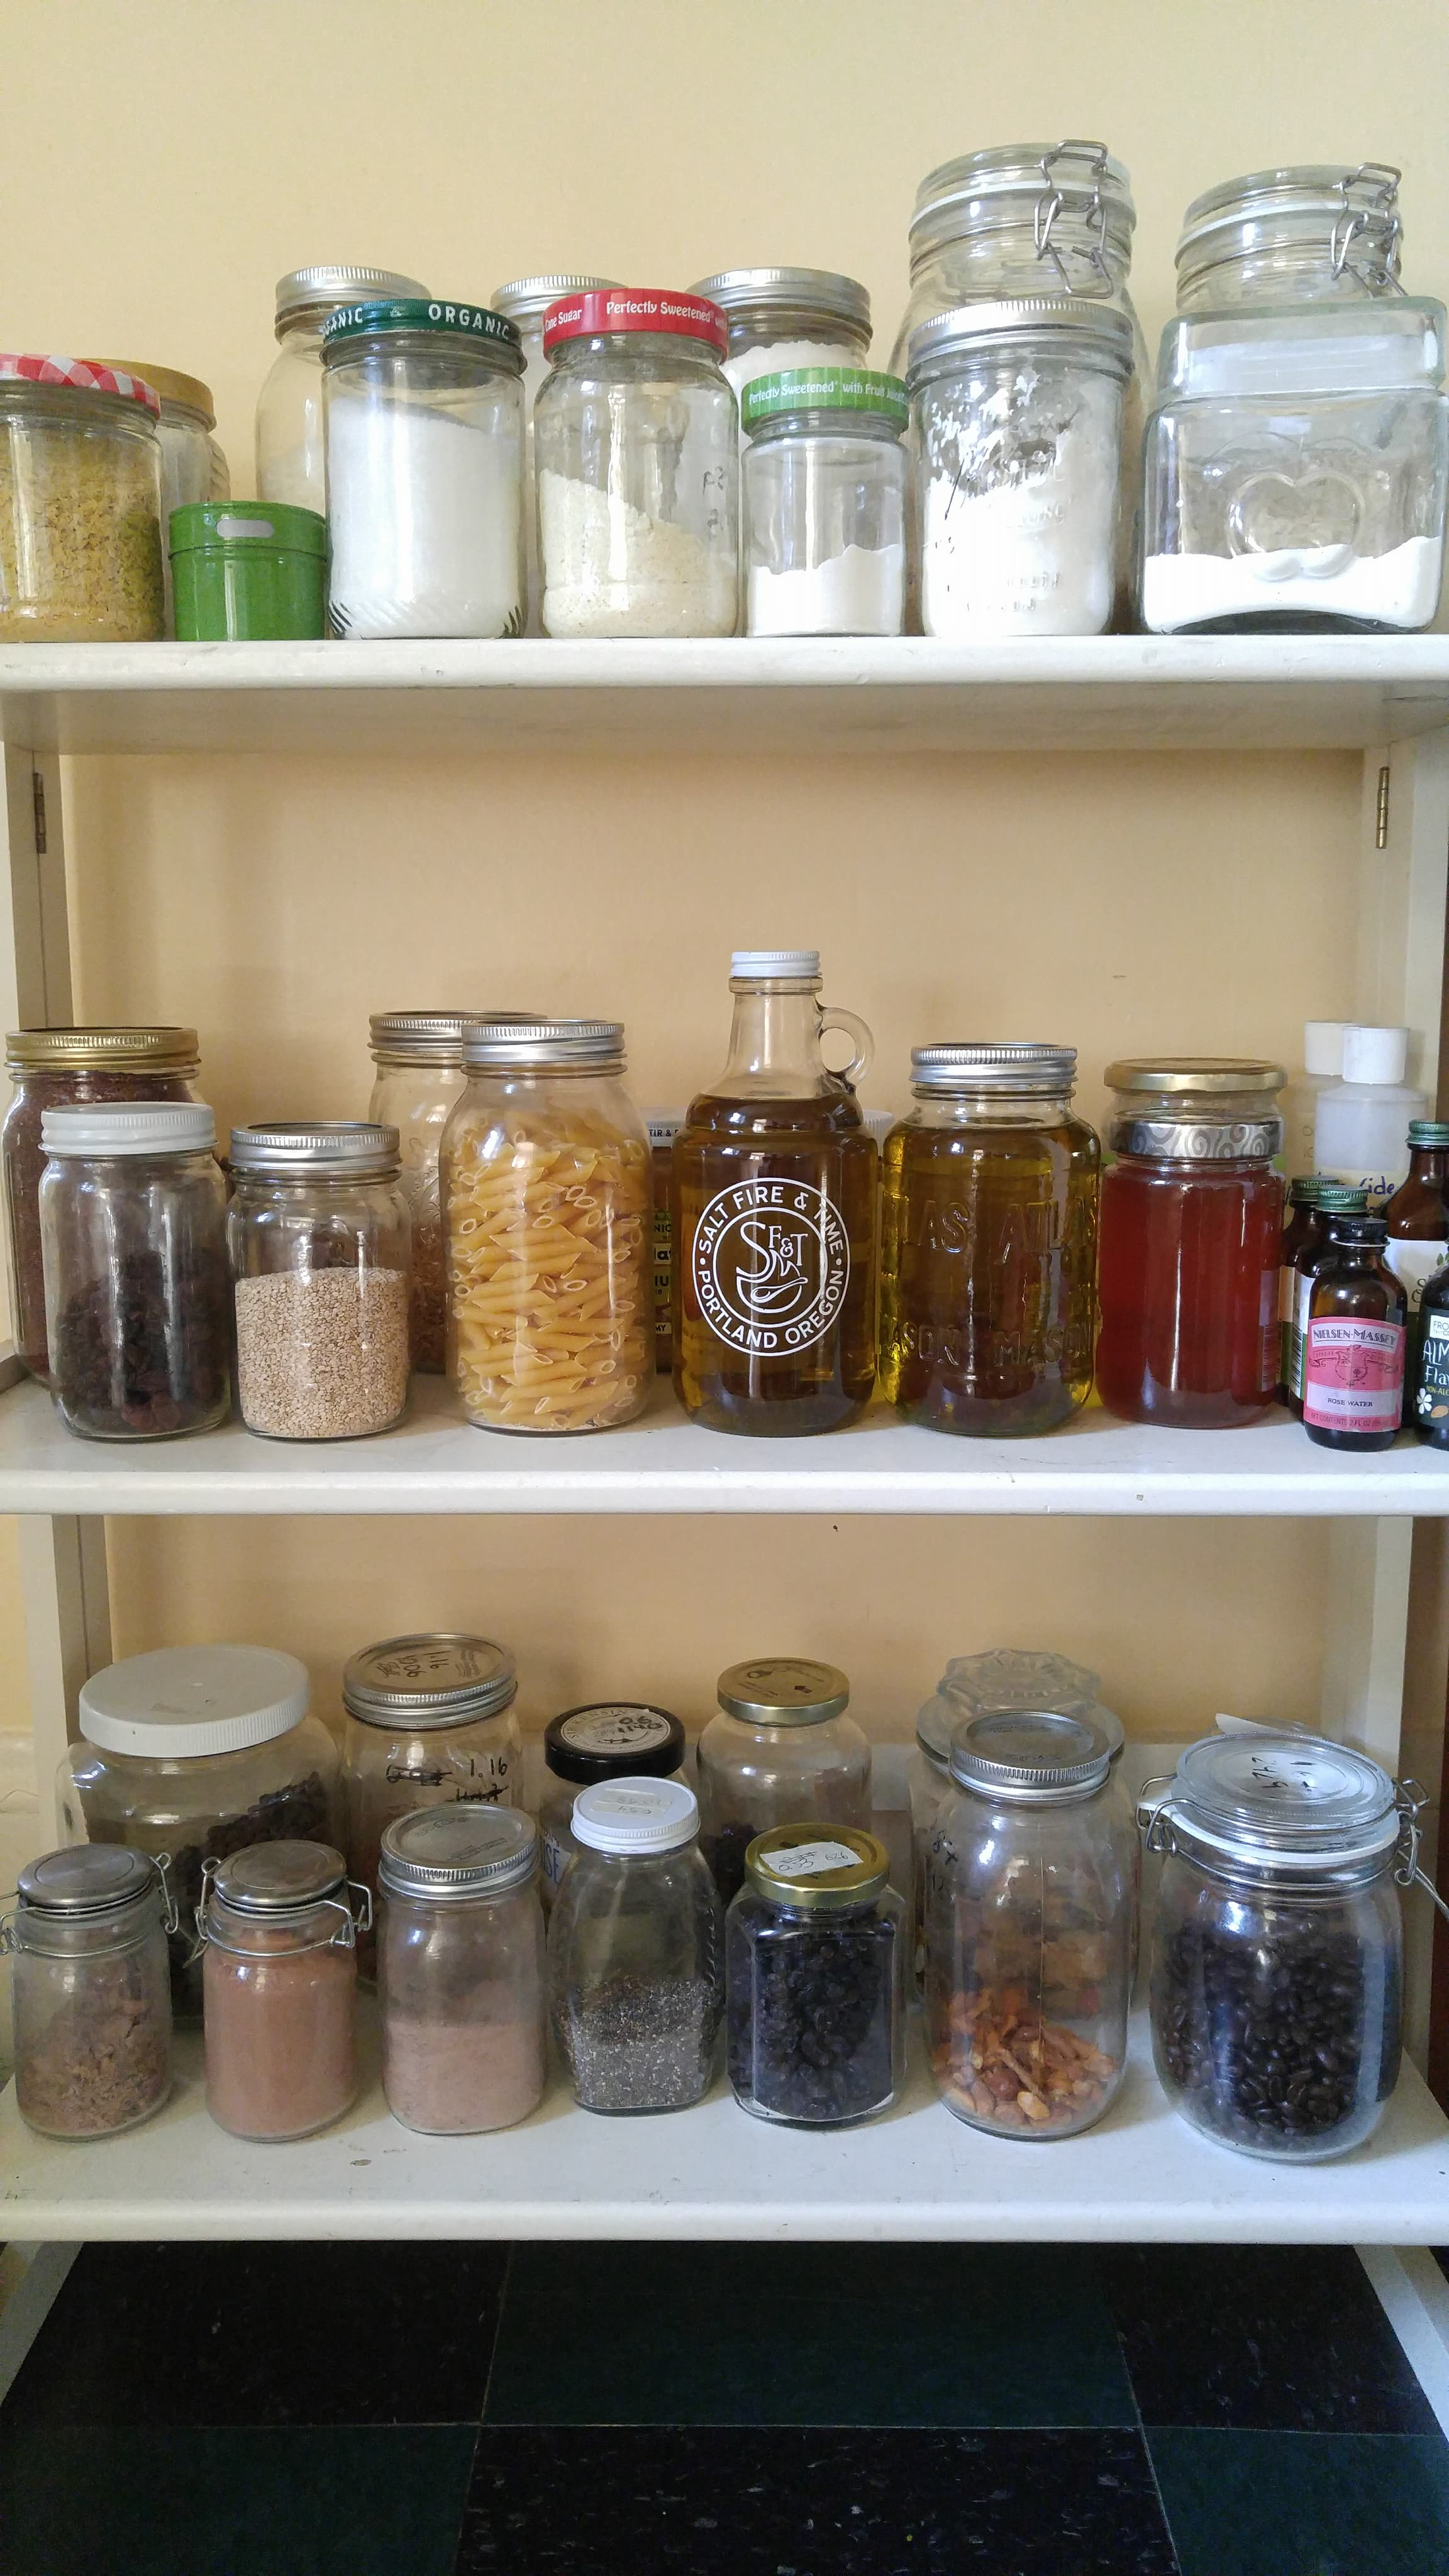 pantry_containers_2.jpg